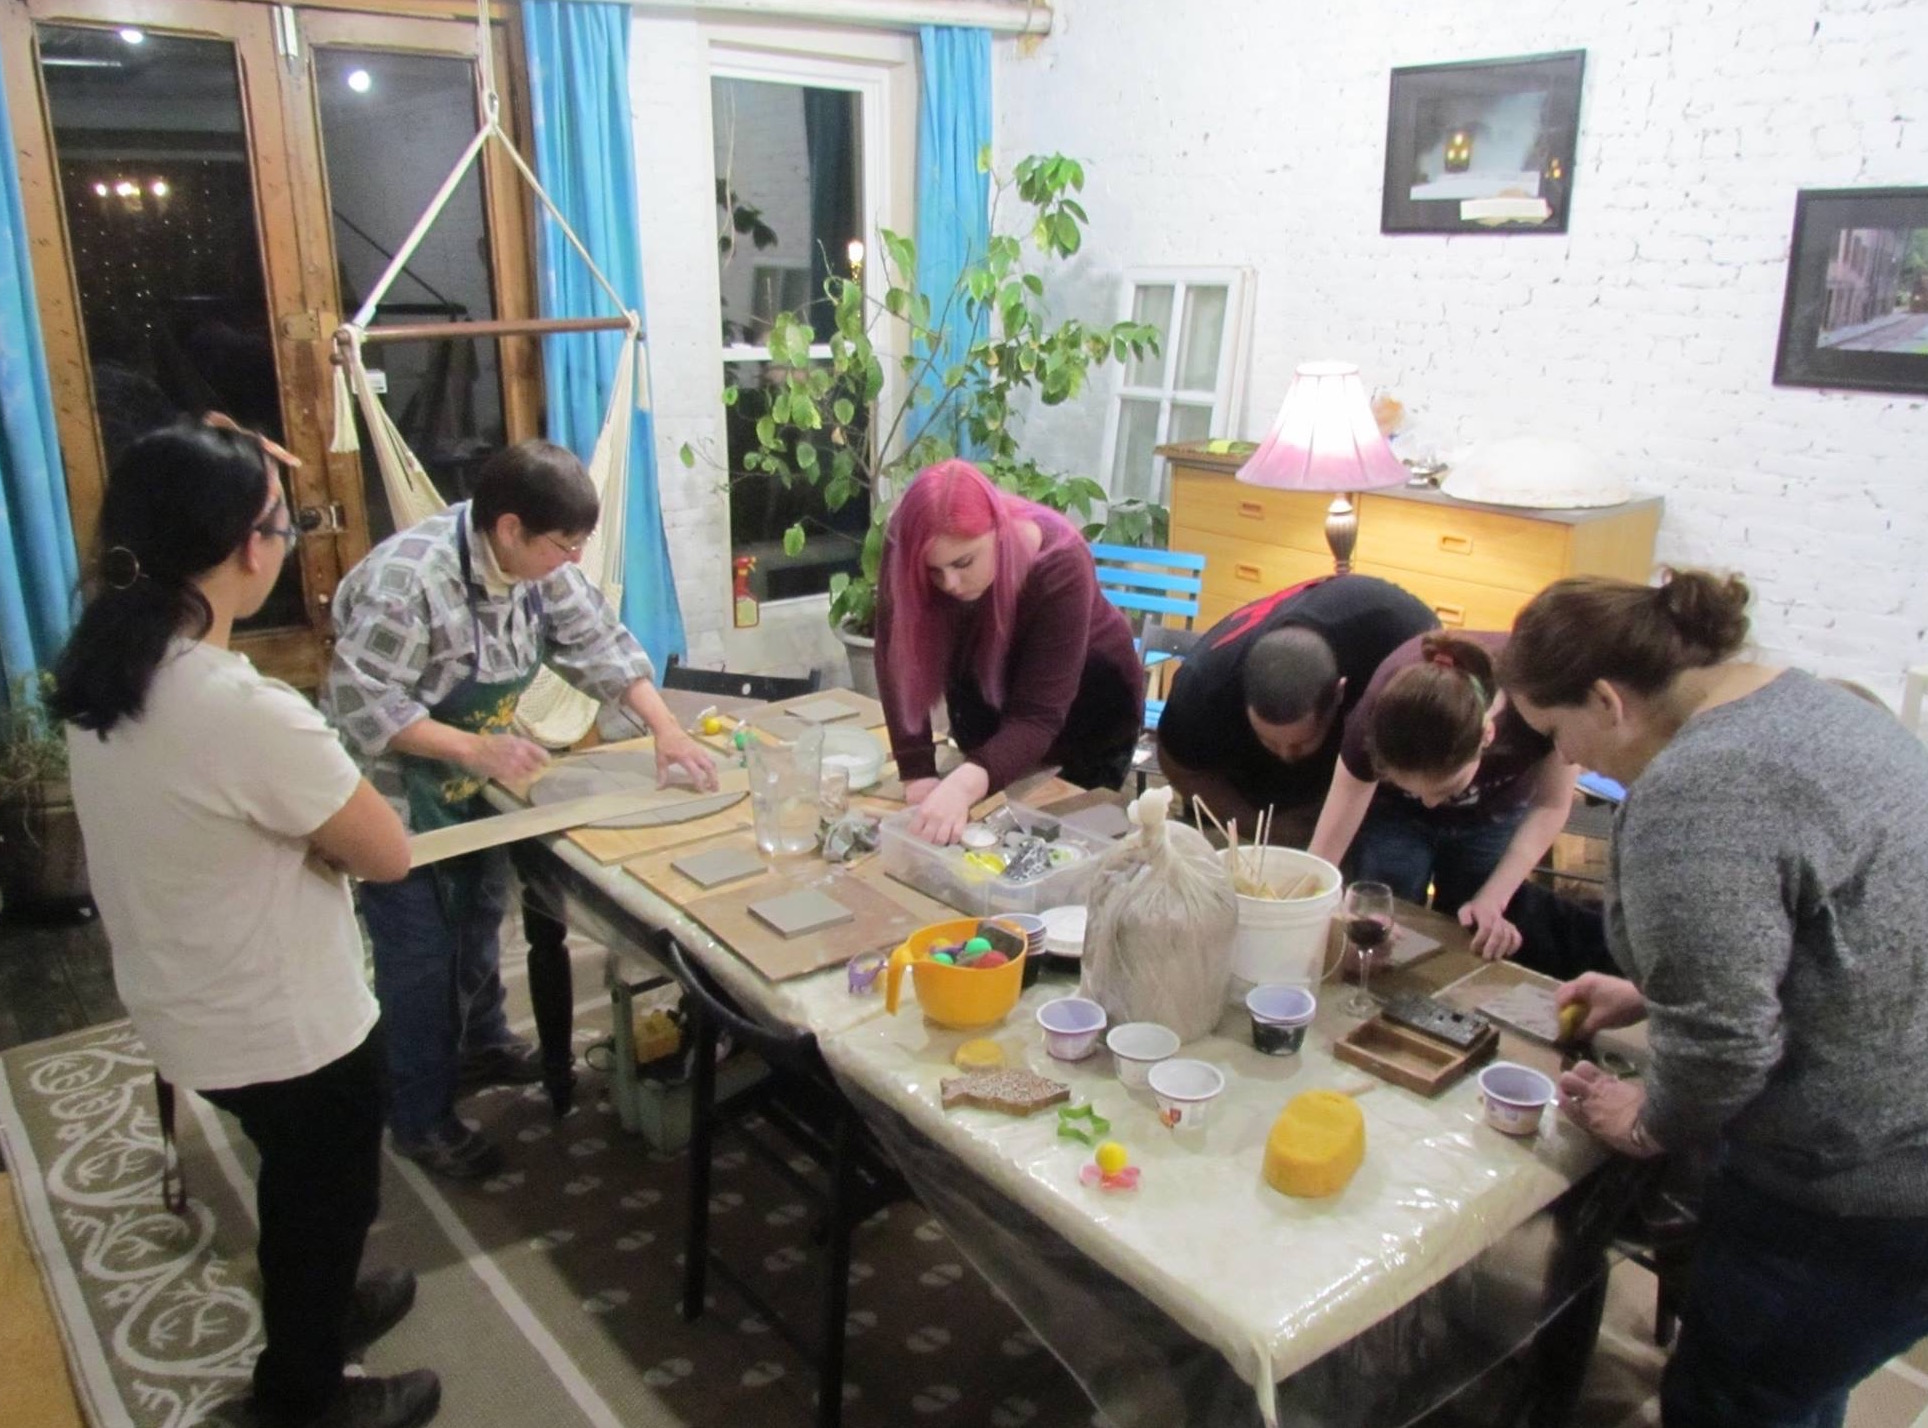 Making clay tiles in the studio during Arts on Main